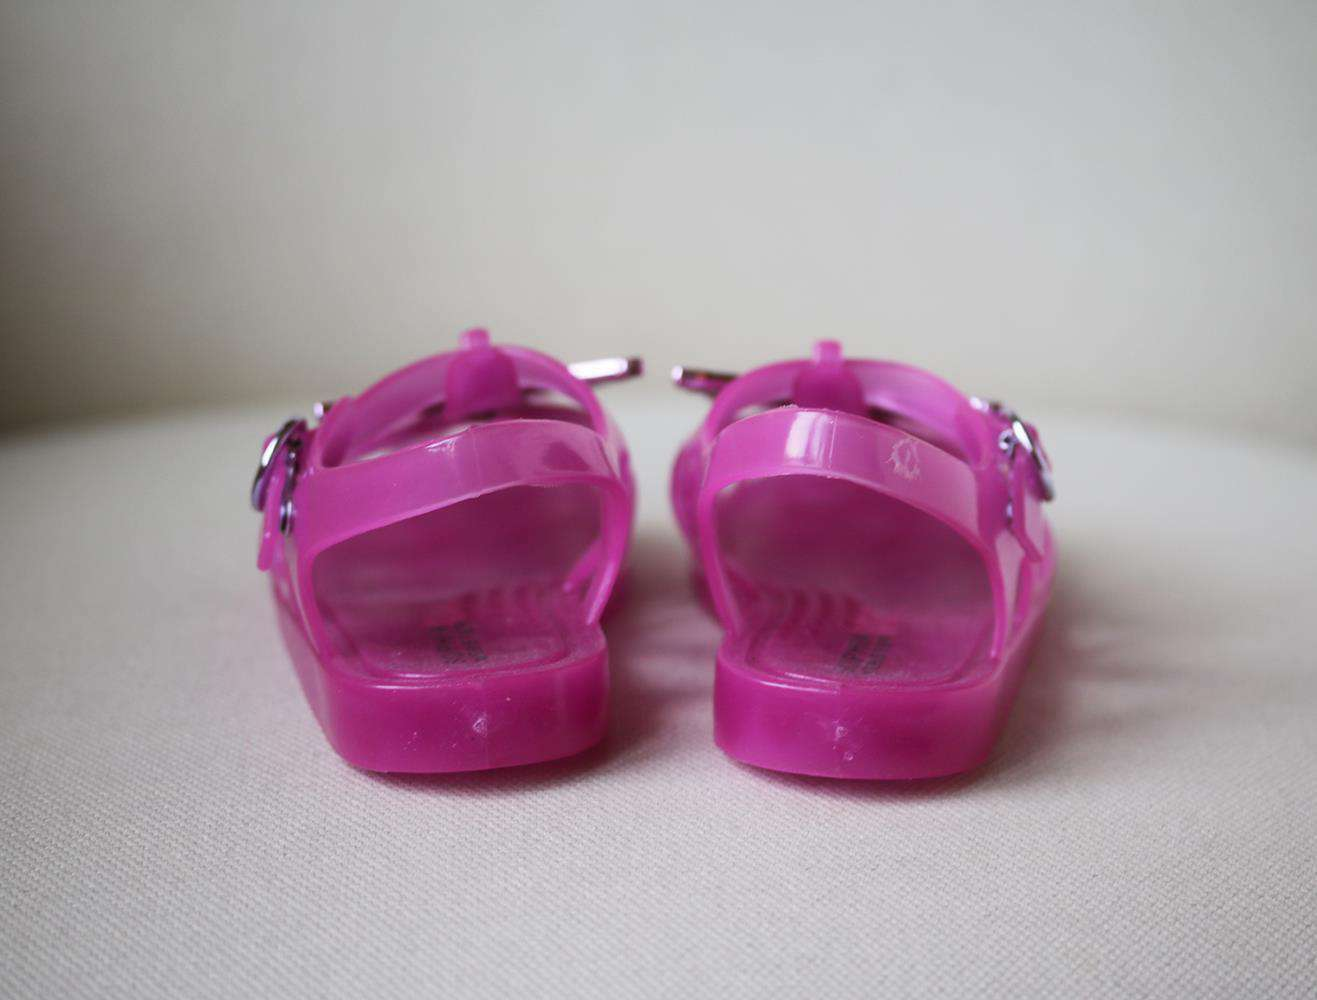 SOPHIA WEBSTER KIDS GIRLS RIVA JELLY SANDALS EU 29/20 UK 11